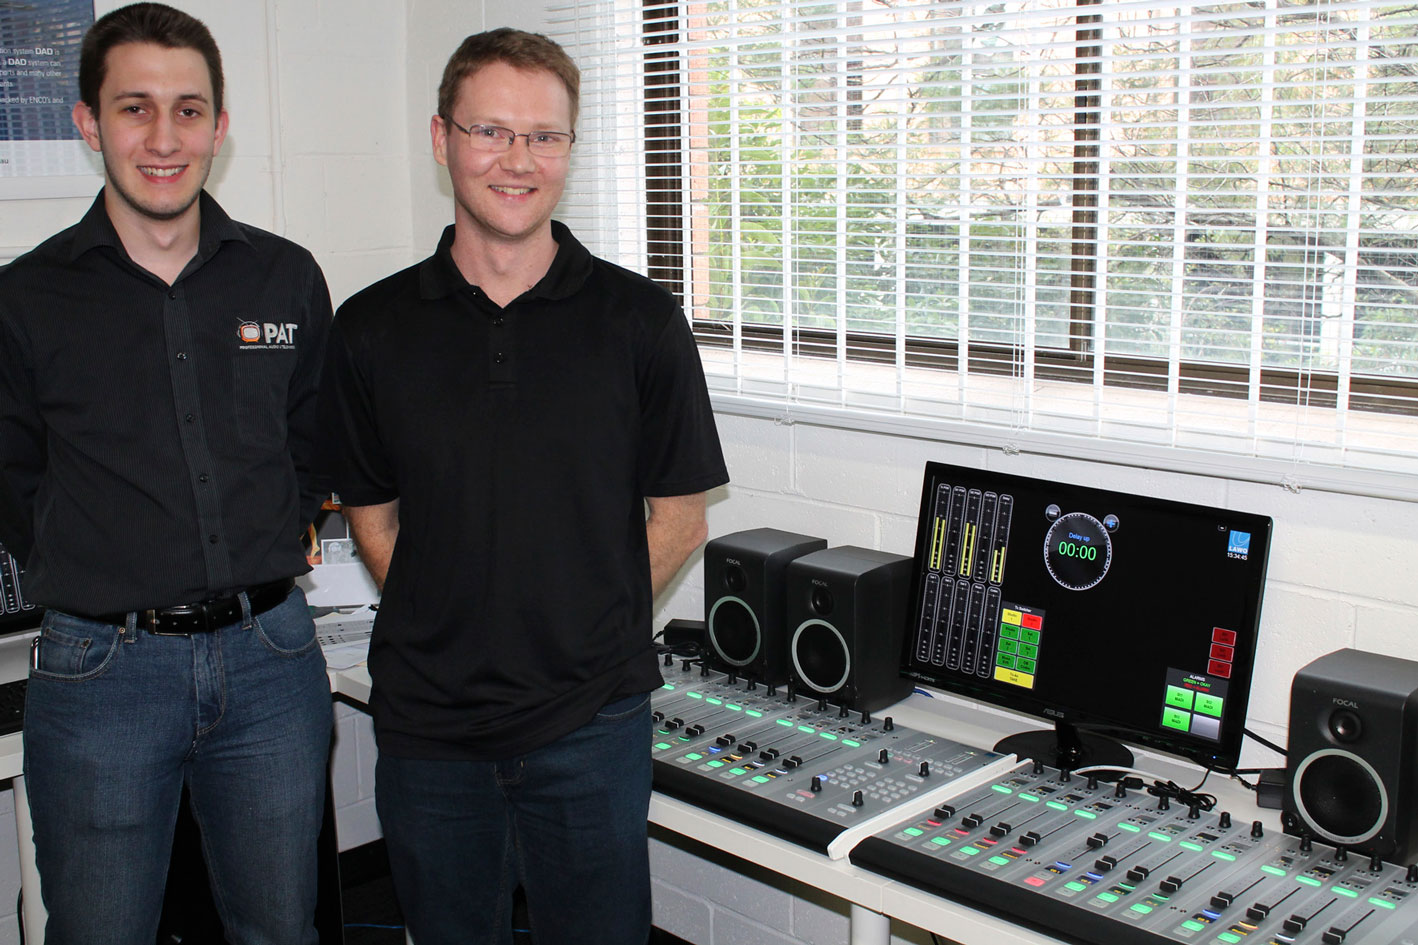 Pic left to right: Nick Brown (PAT) and system integrator Josh Parkinson (image: supplied).